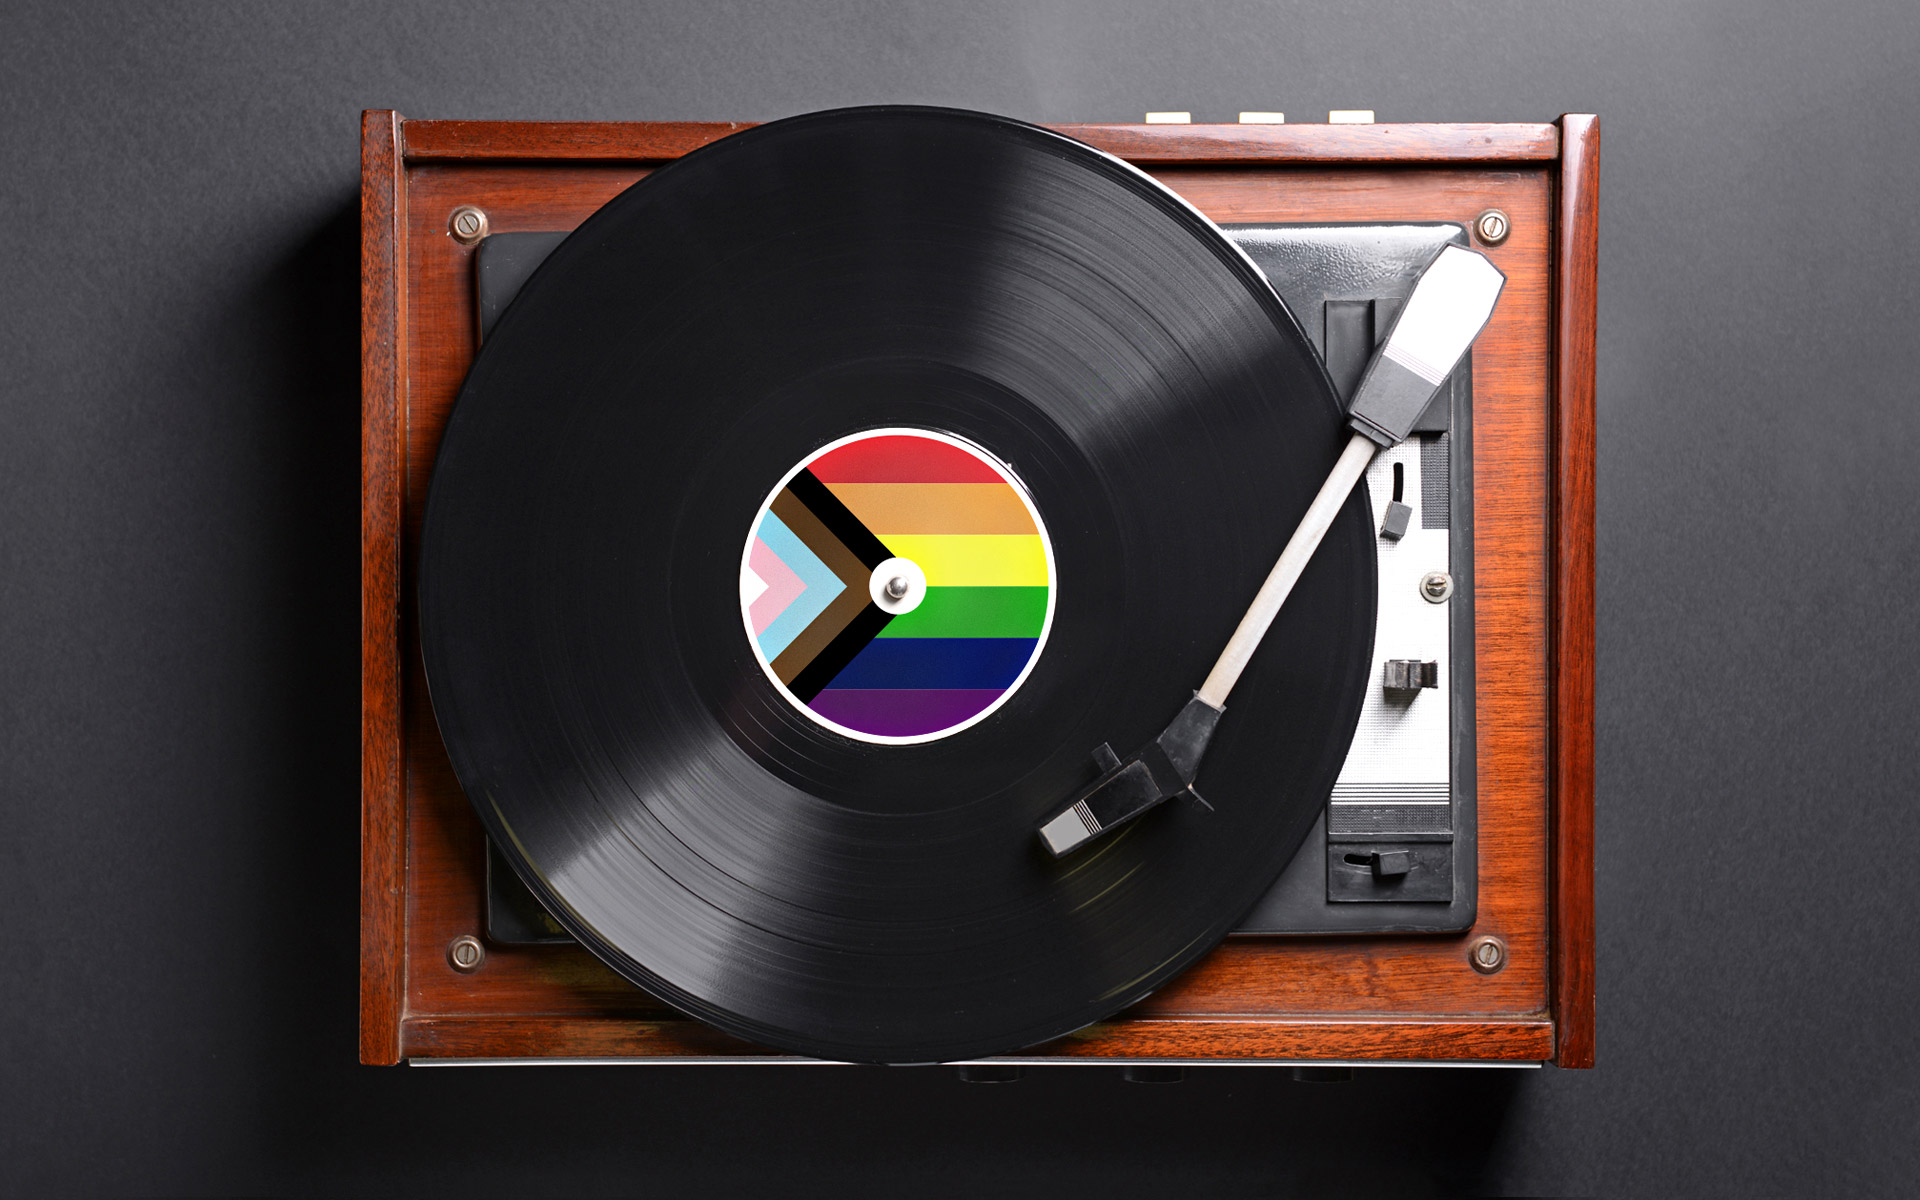 A wooden turn table that has a record on it featuring the LGBTQIA+ pride flag